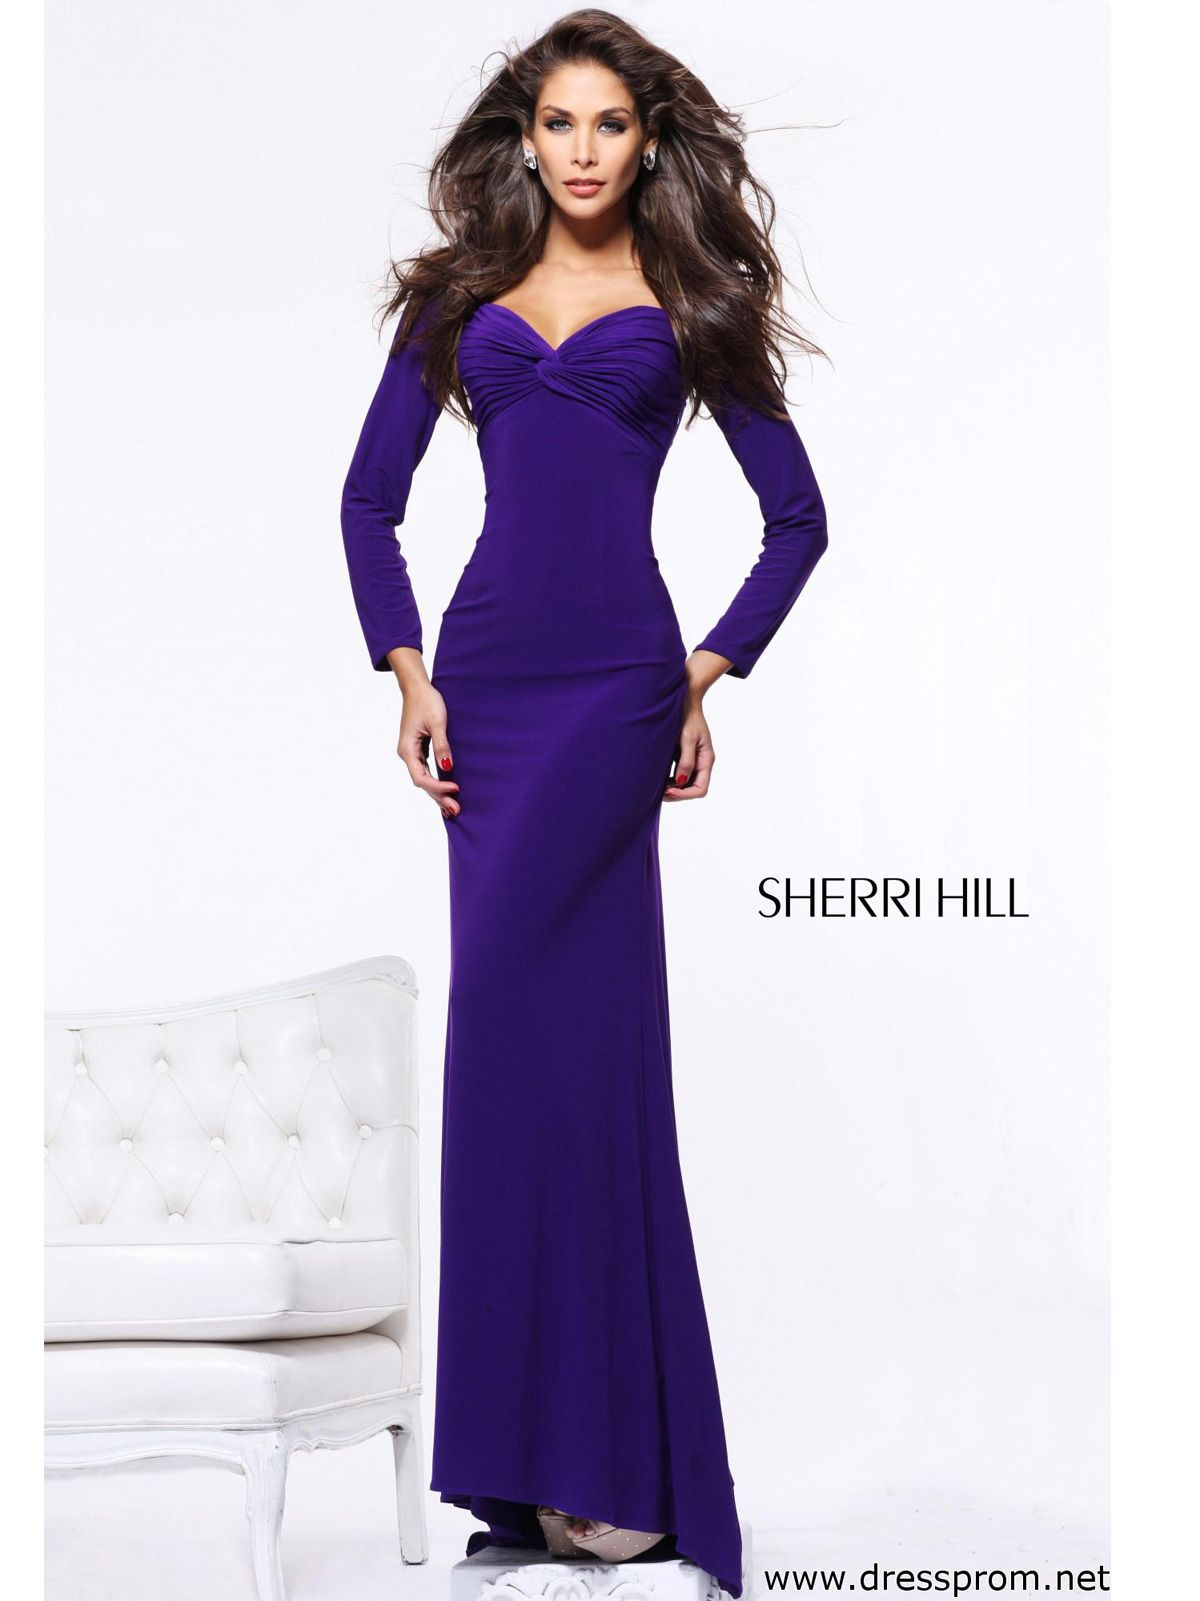 Size purple in stockevoke class sex appeal and elegance in this